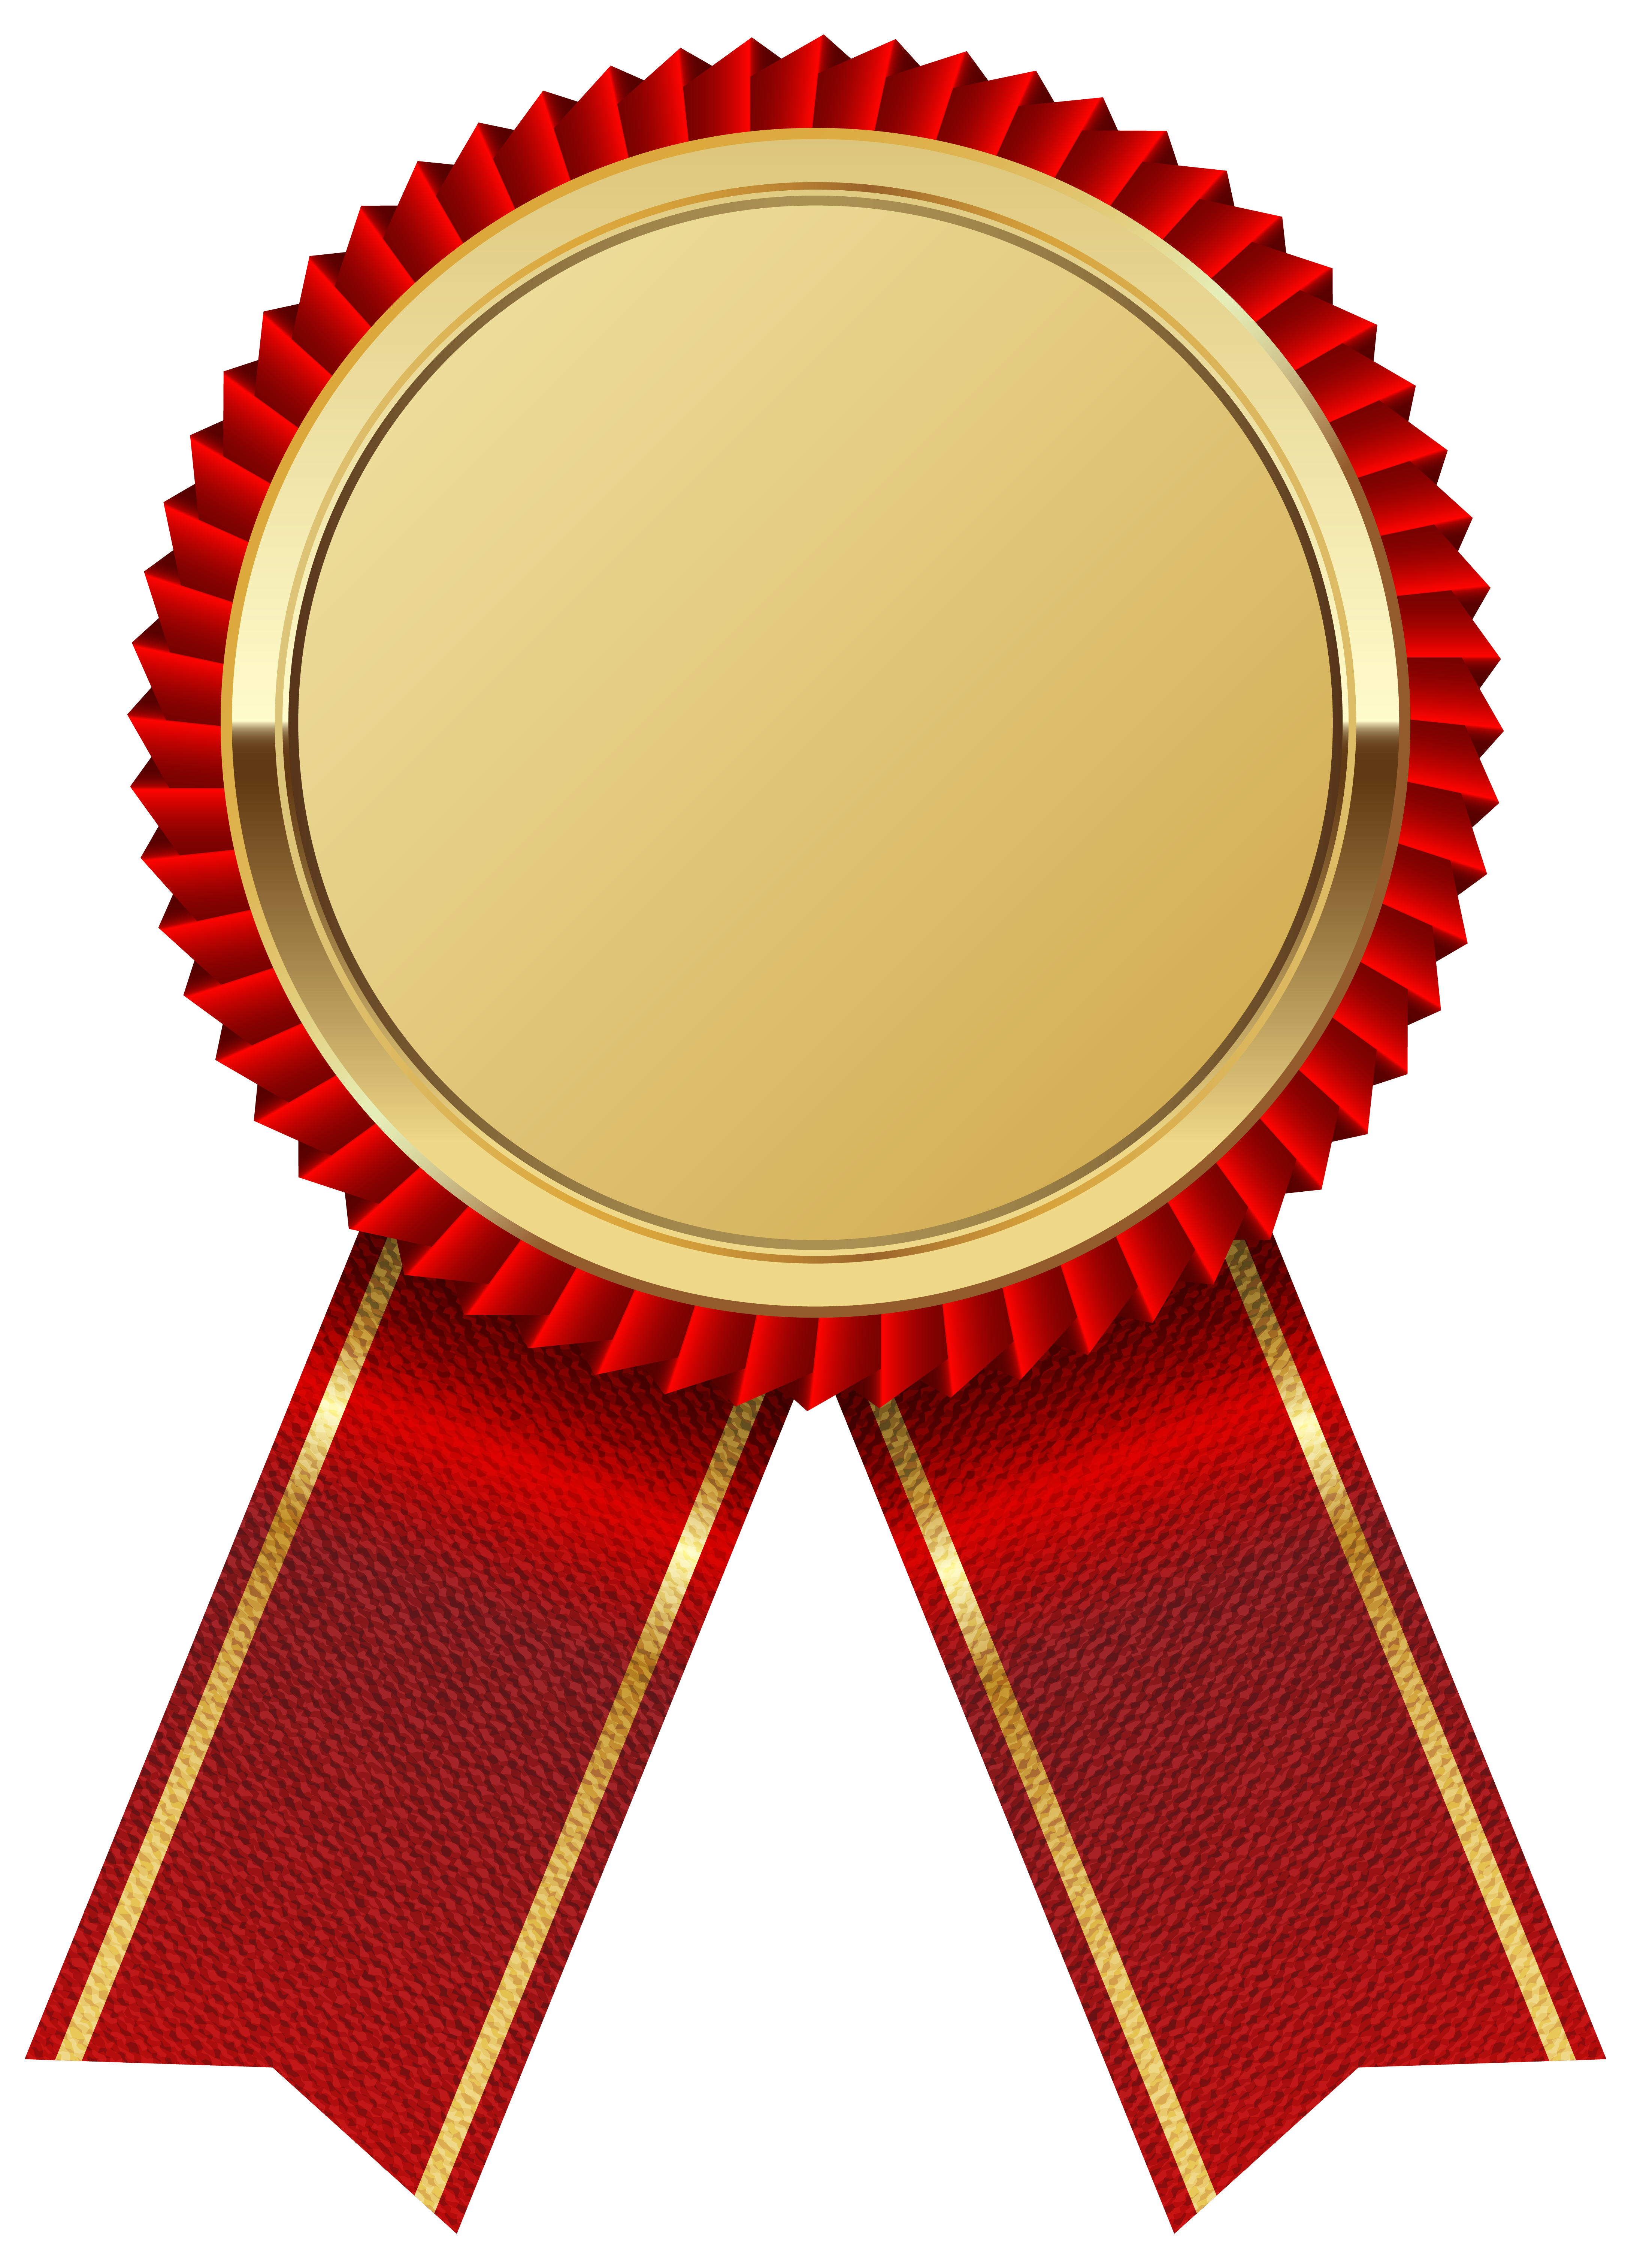 Gold Medal With Red Ribbon PNG Clipart I-Gold Medal with Red Ribbon PNG Clipart Image-7